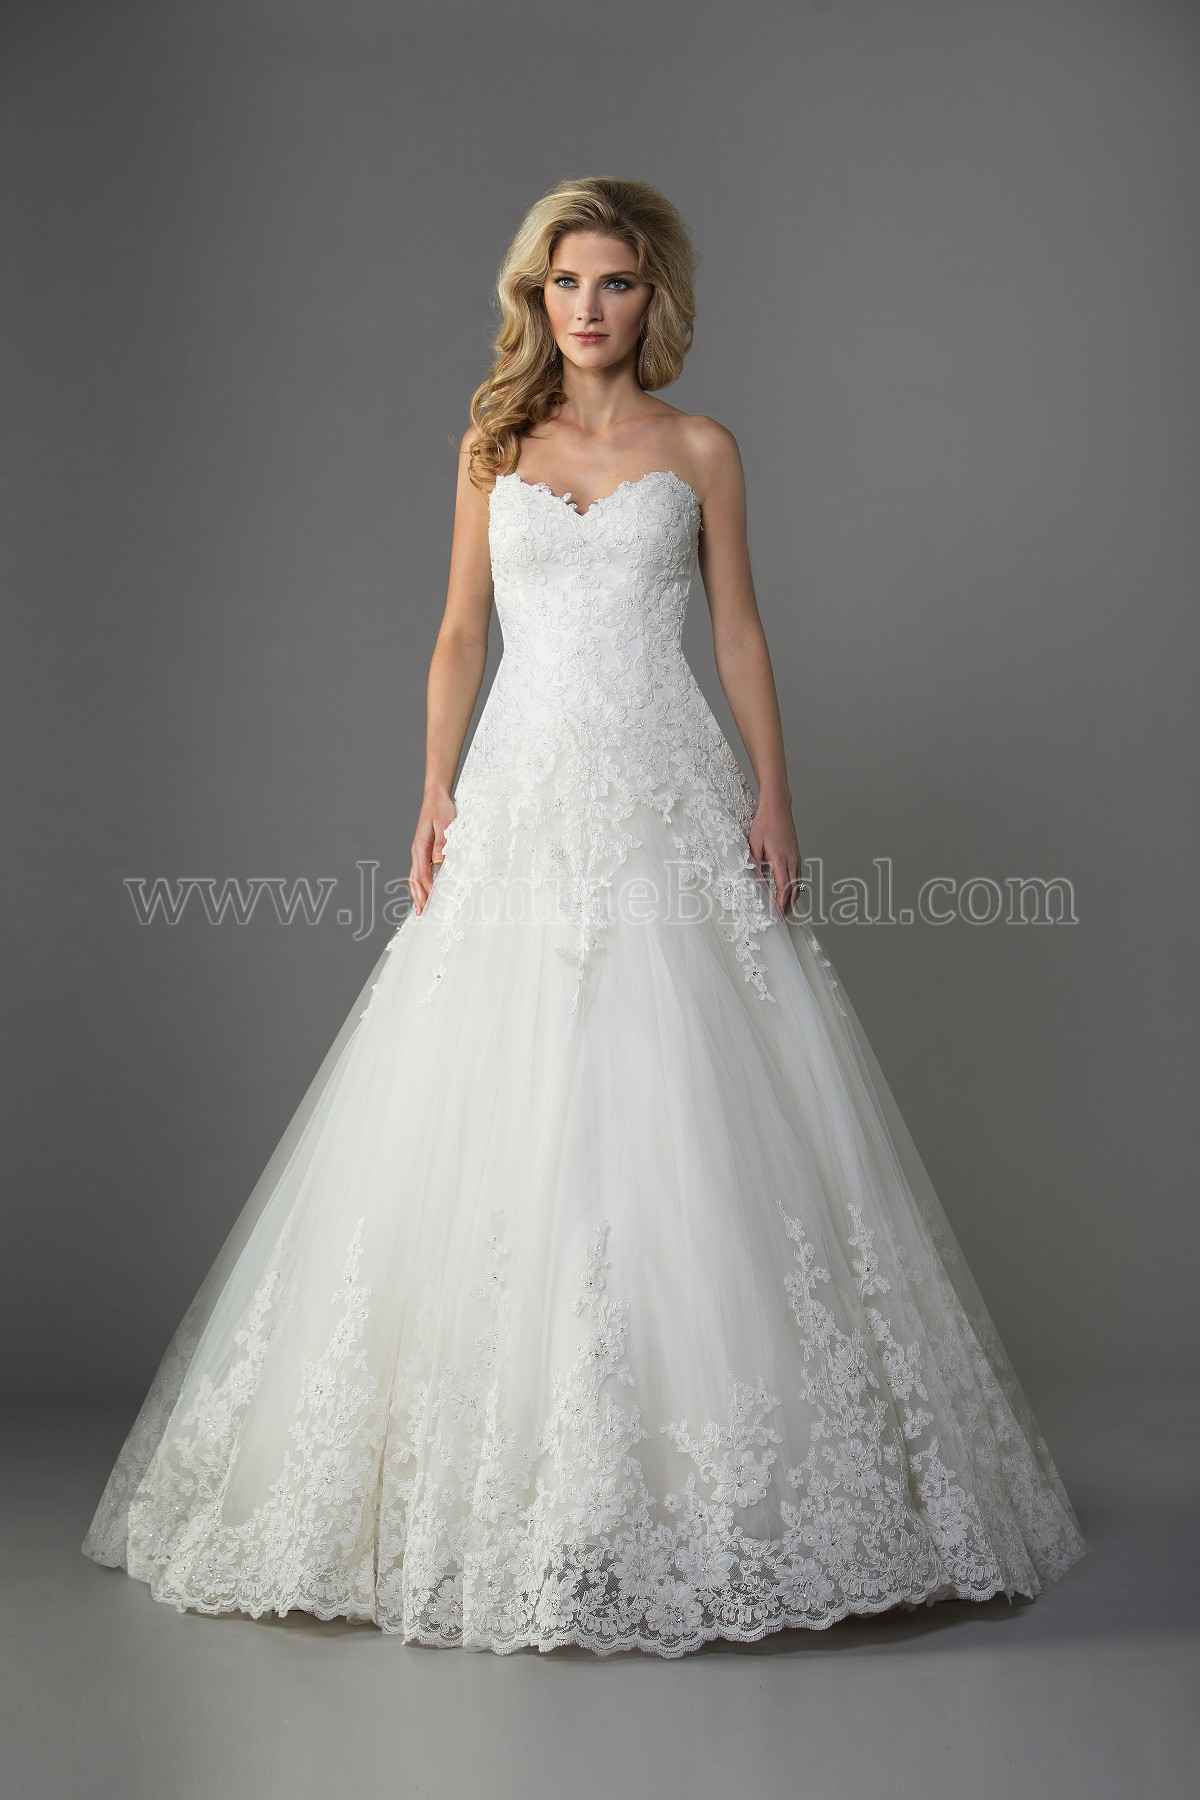 F161063 Sweetheart Strapless Lace & Tulle Ball Gown Wedding Dress